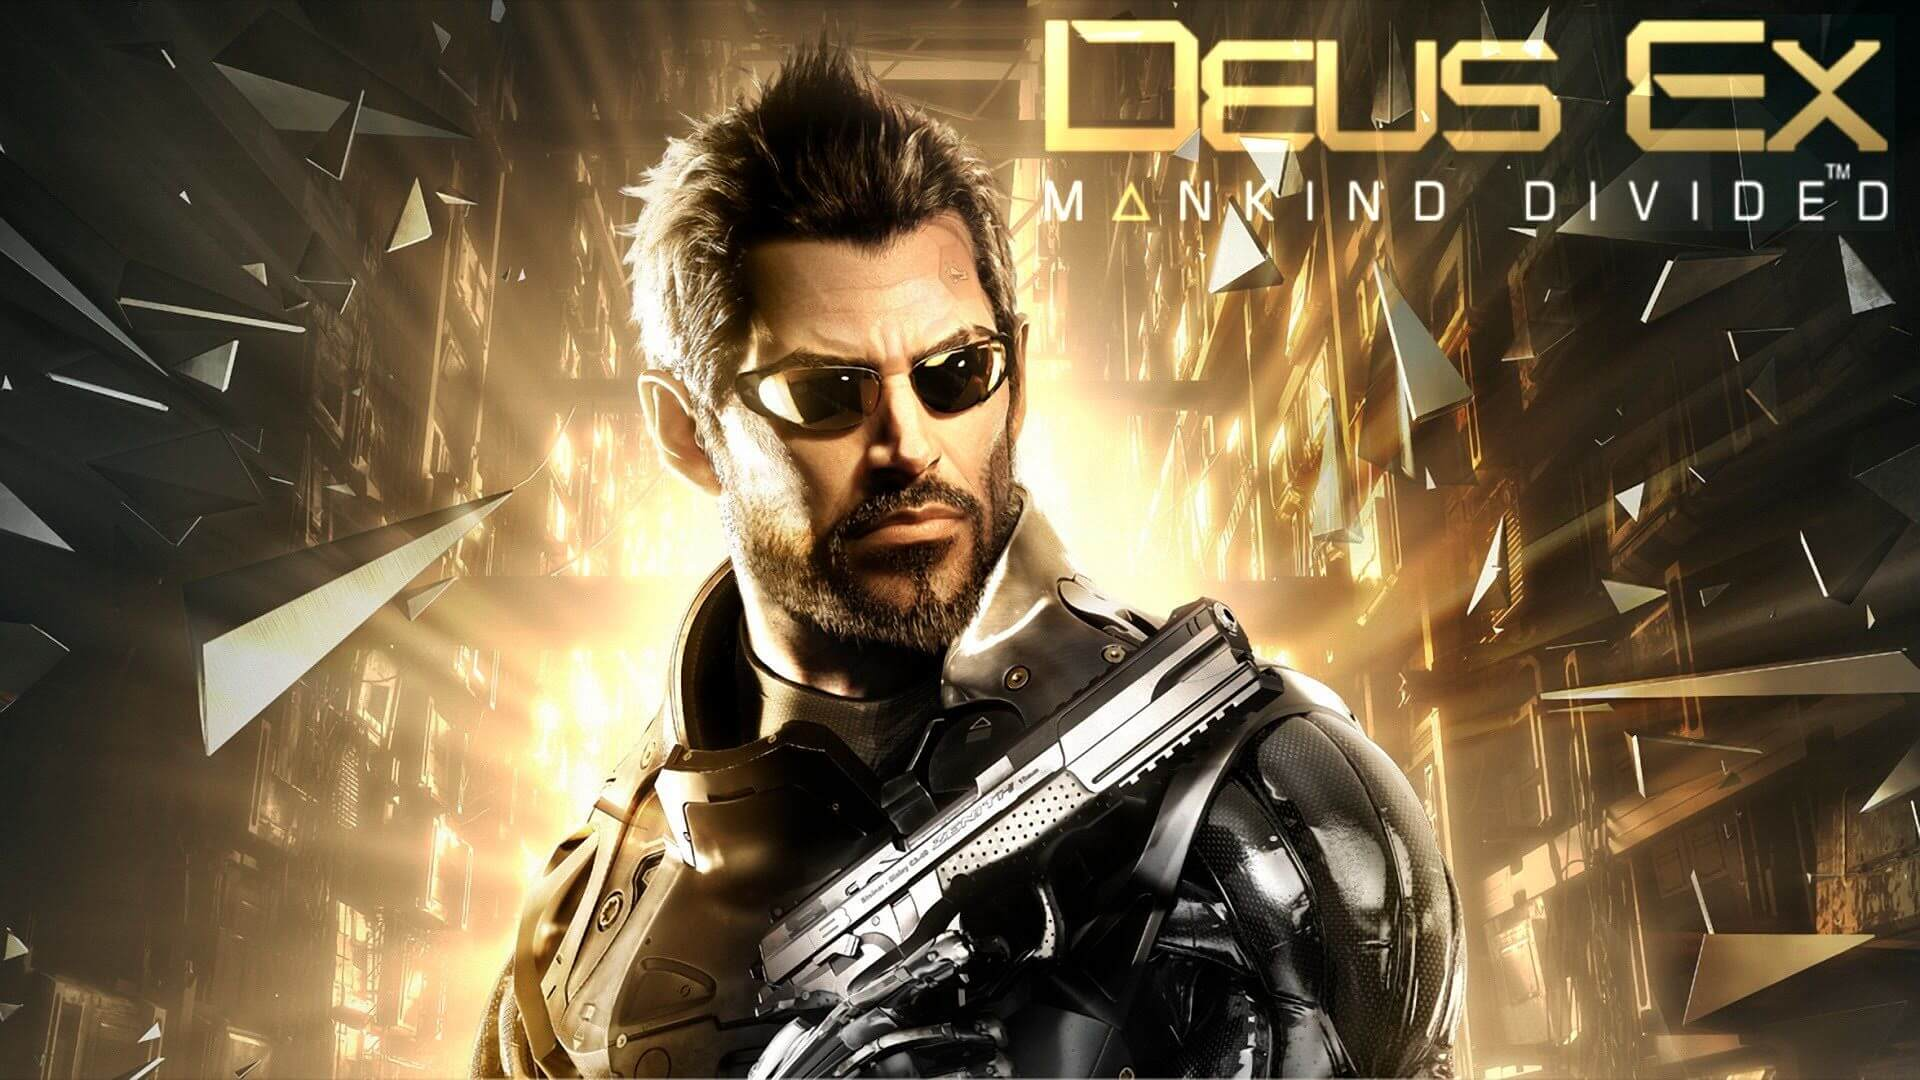 New Deus Ex: Mankind Divided Trailer Revealed